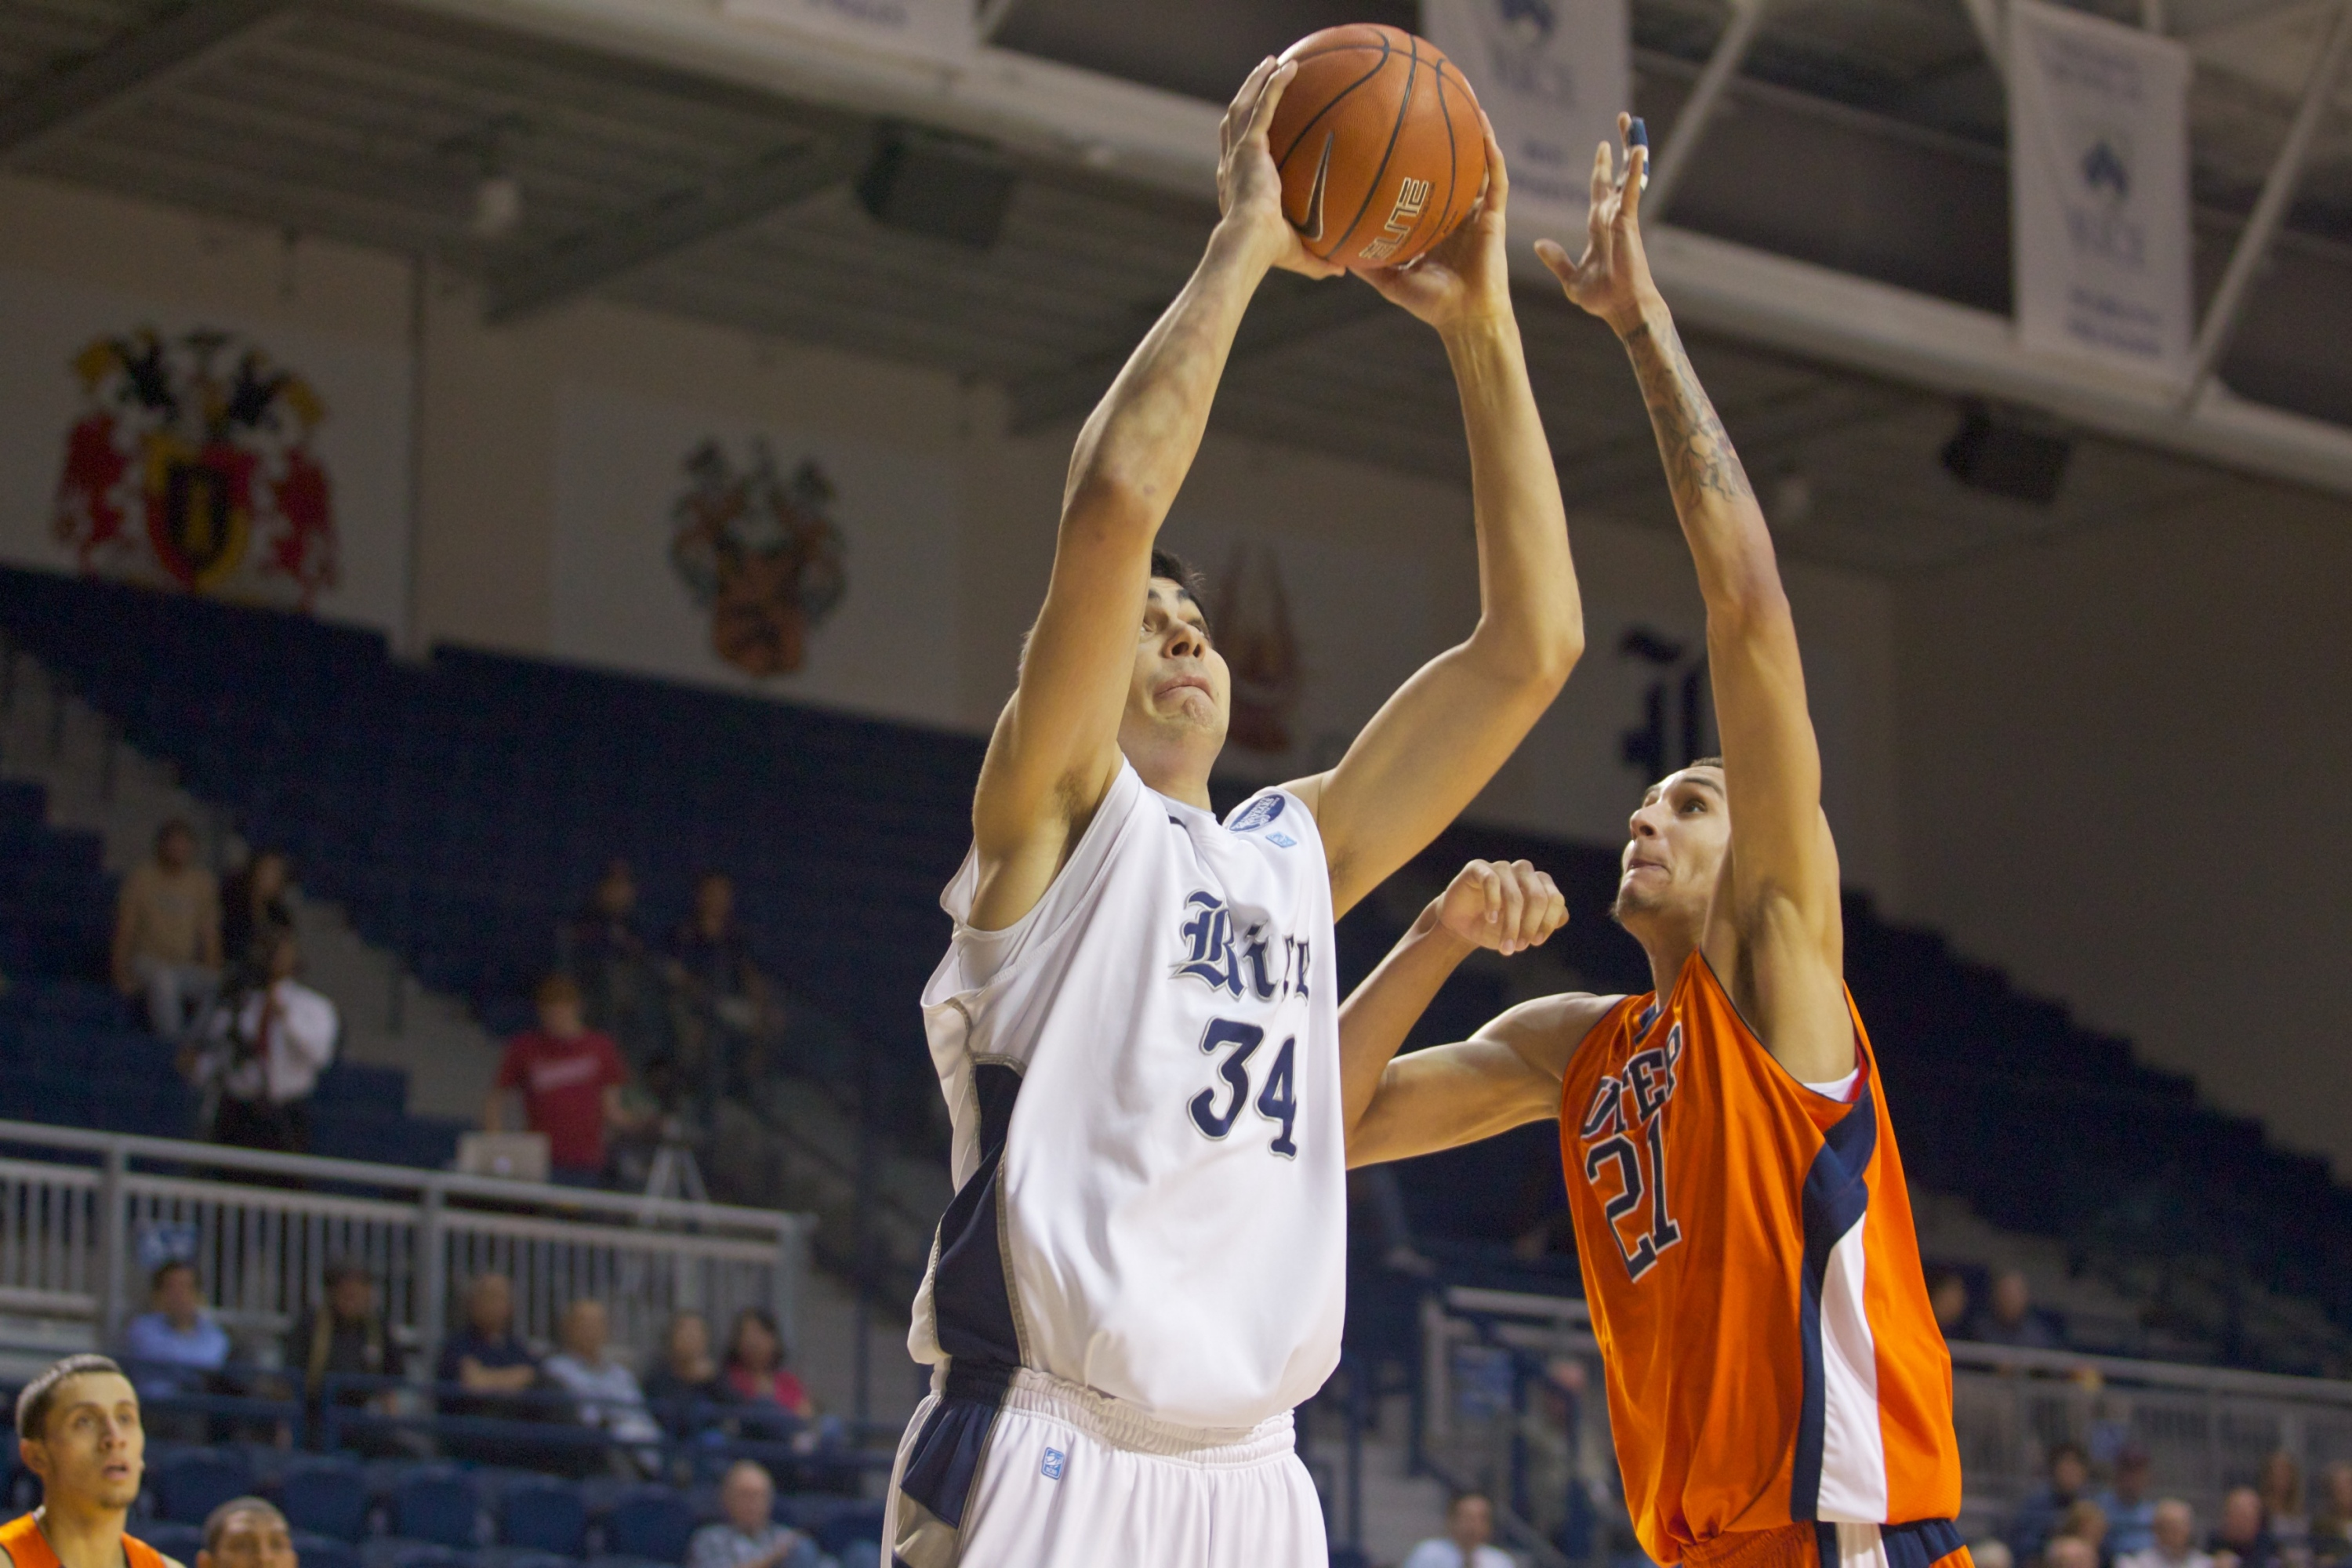 Rice will look to improve on its conference standing Wednesday in El Paso.